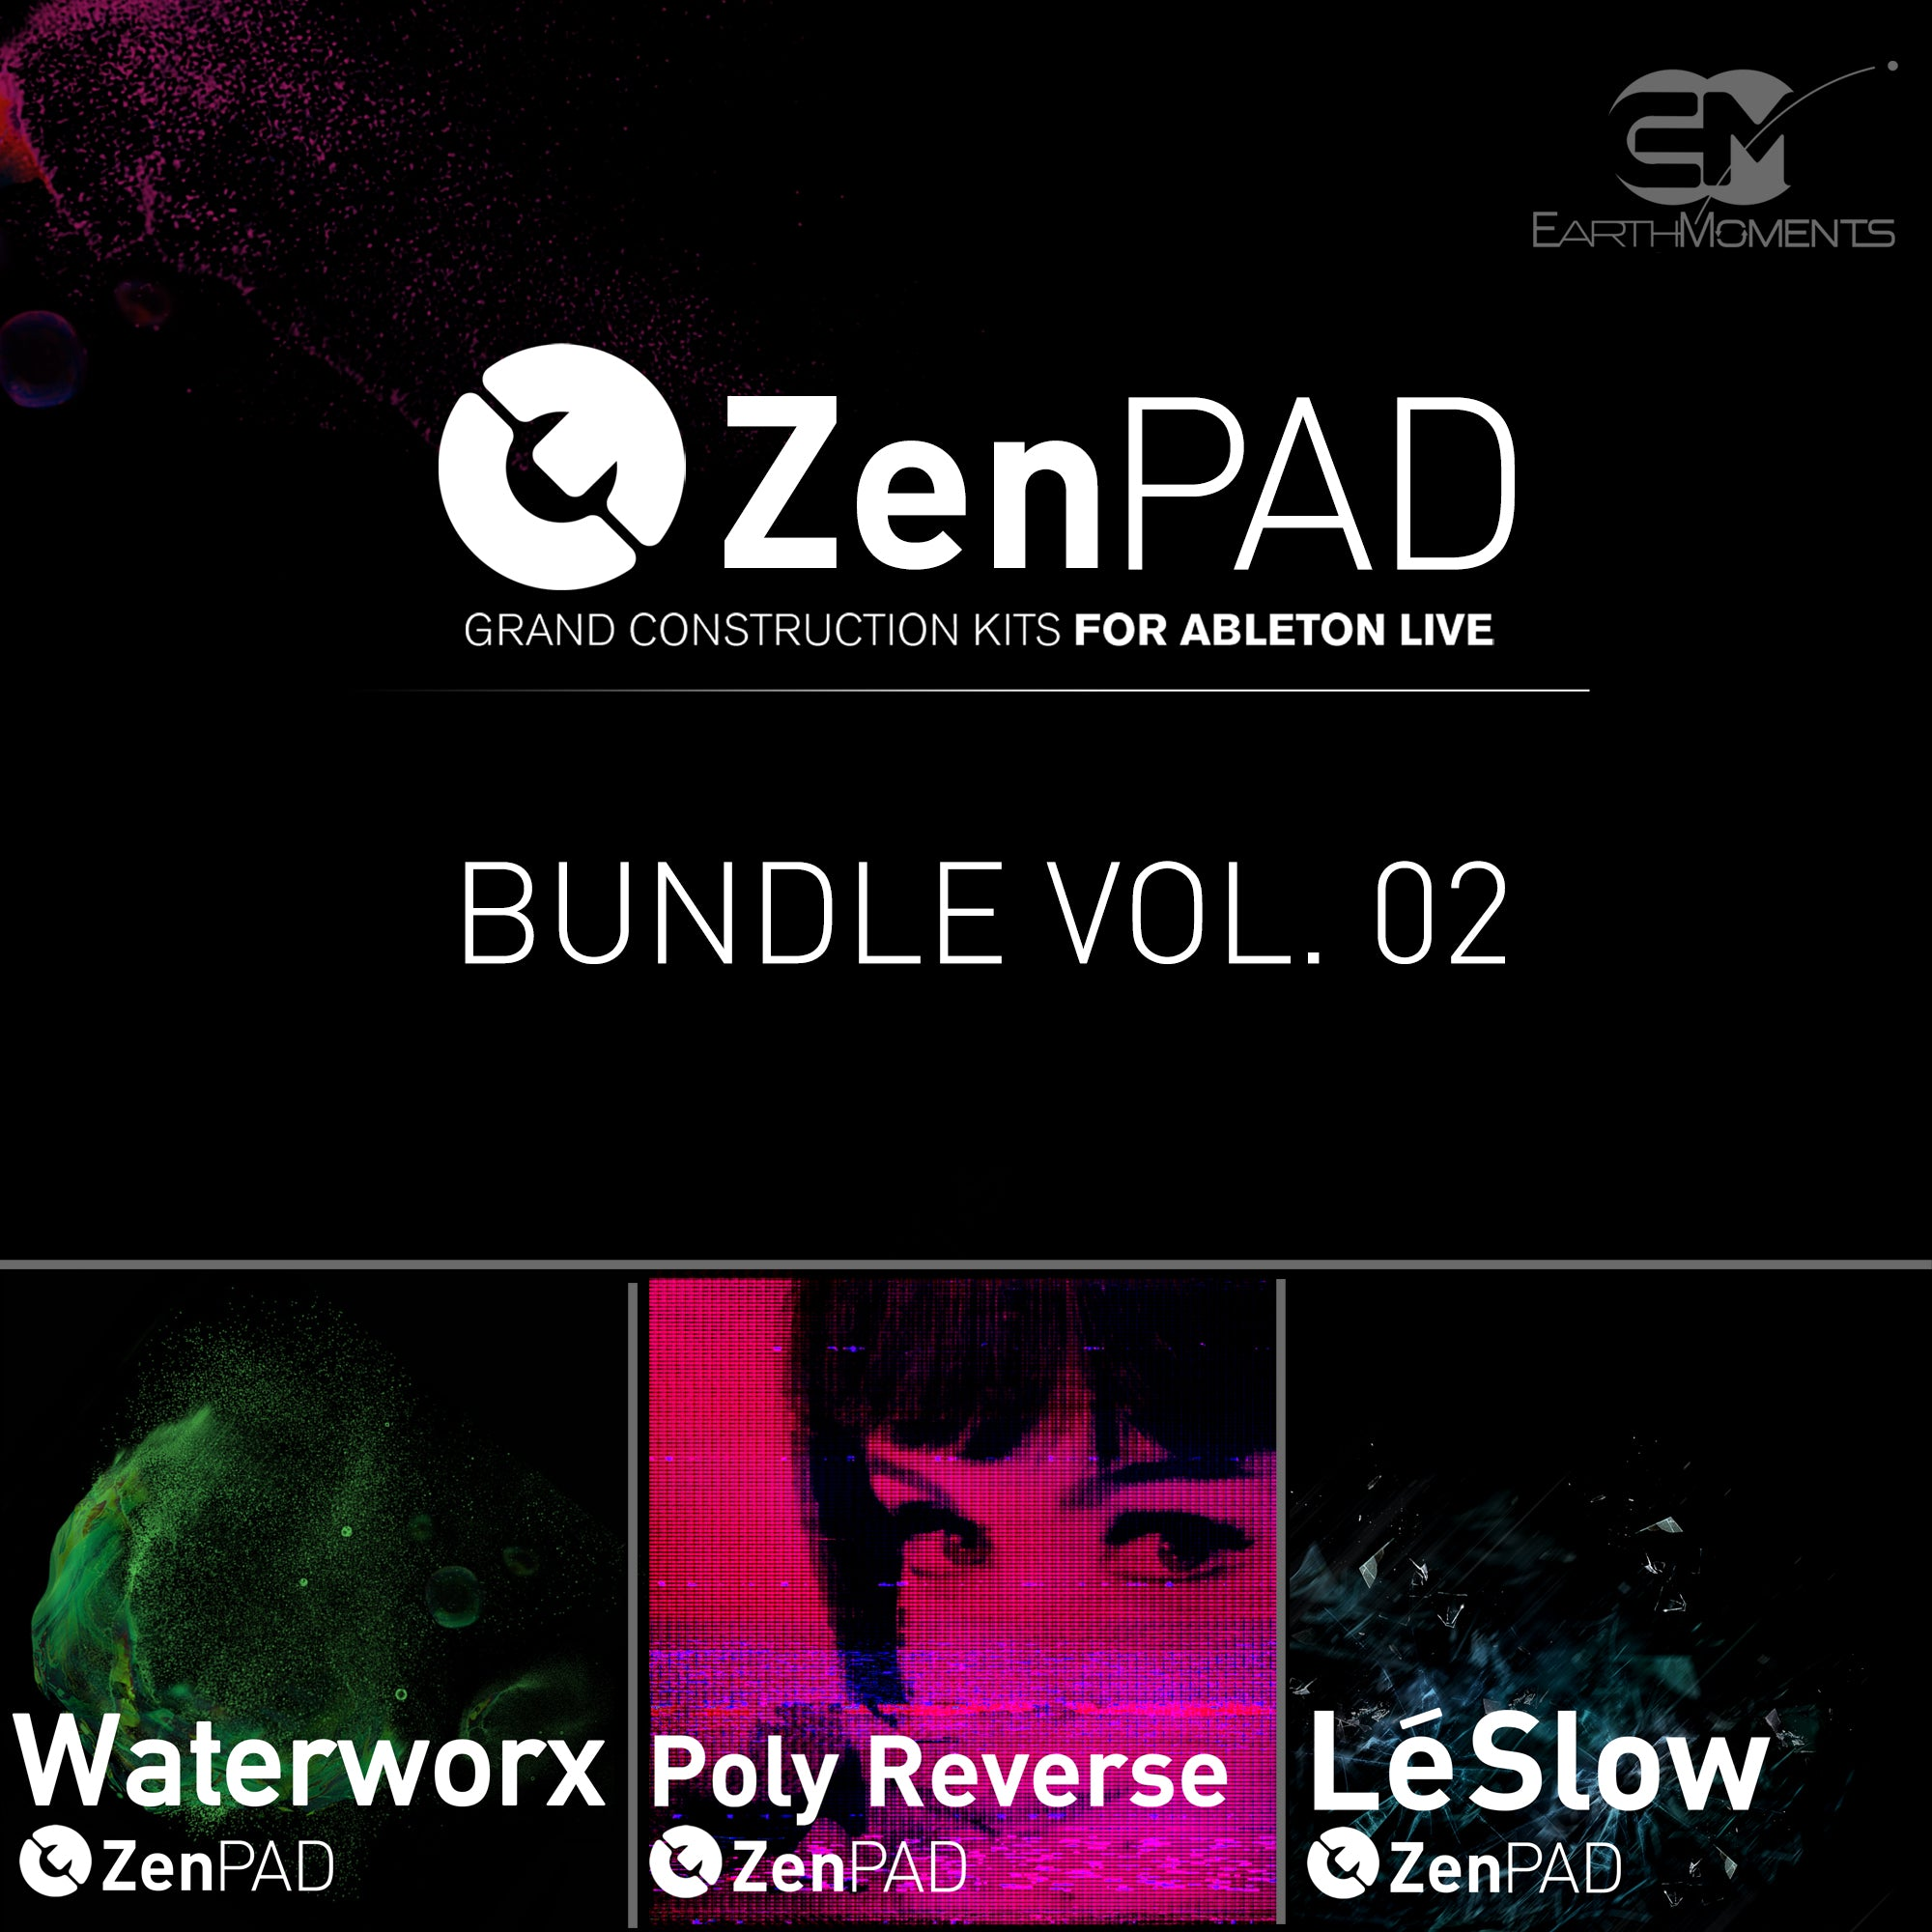 ZenPad Bundle Vol. 02 / Grand Construction Kits for Ableton Live